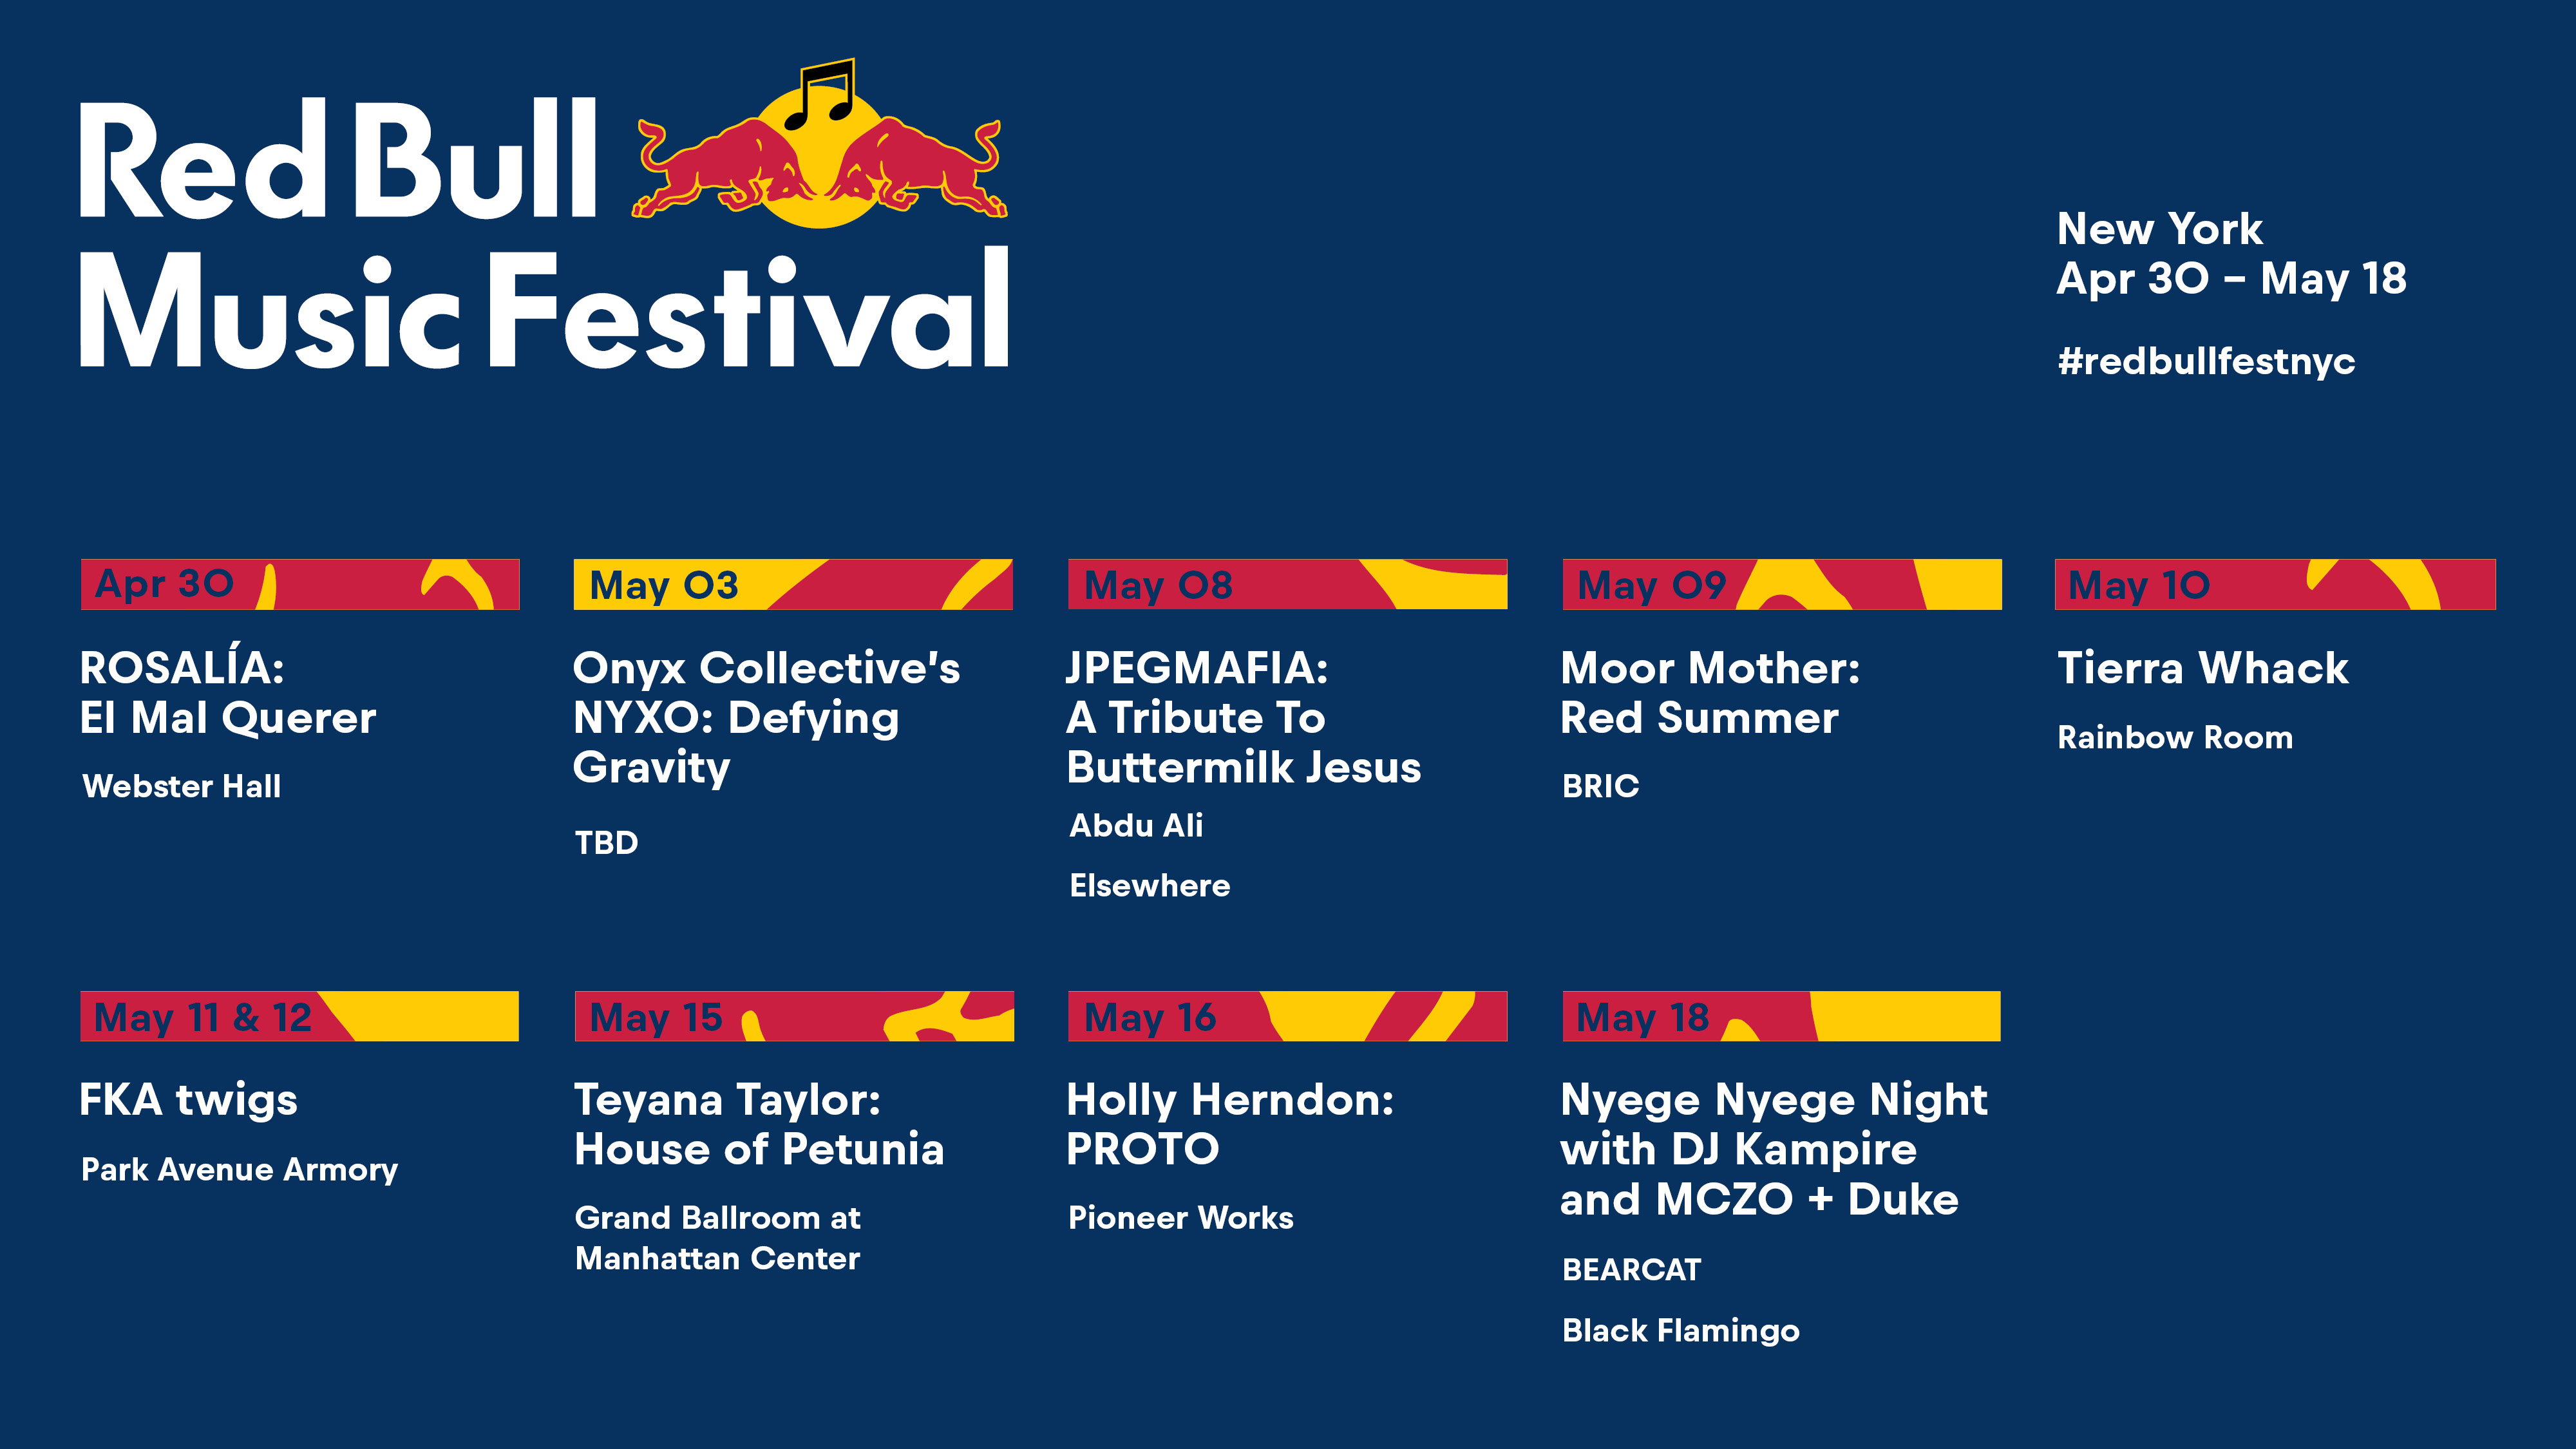 FKA twigs Tierra Whack Red Bull Music Festival New York 2019 lineup Rosalía JPEGMAFIA Onyx Collective Moor Mother Teyana Taylor Holly Herndon